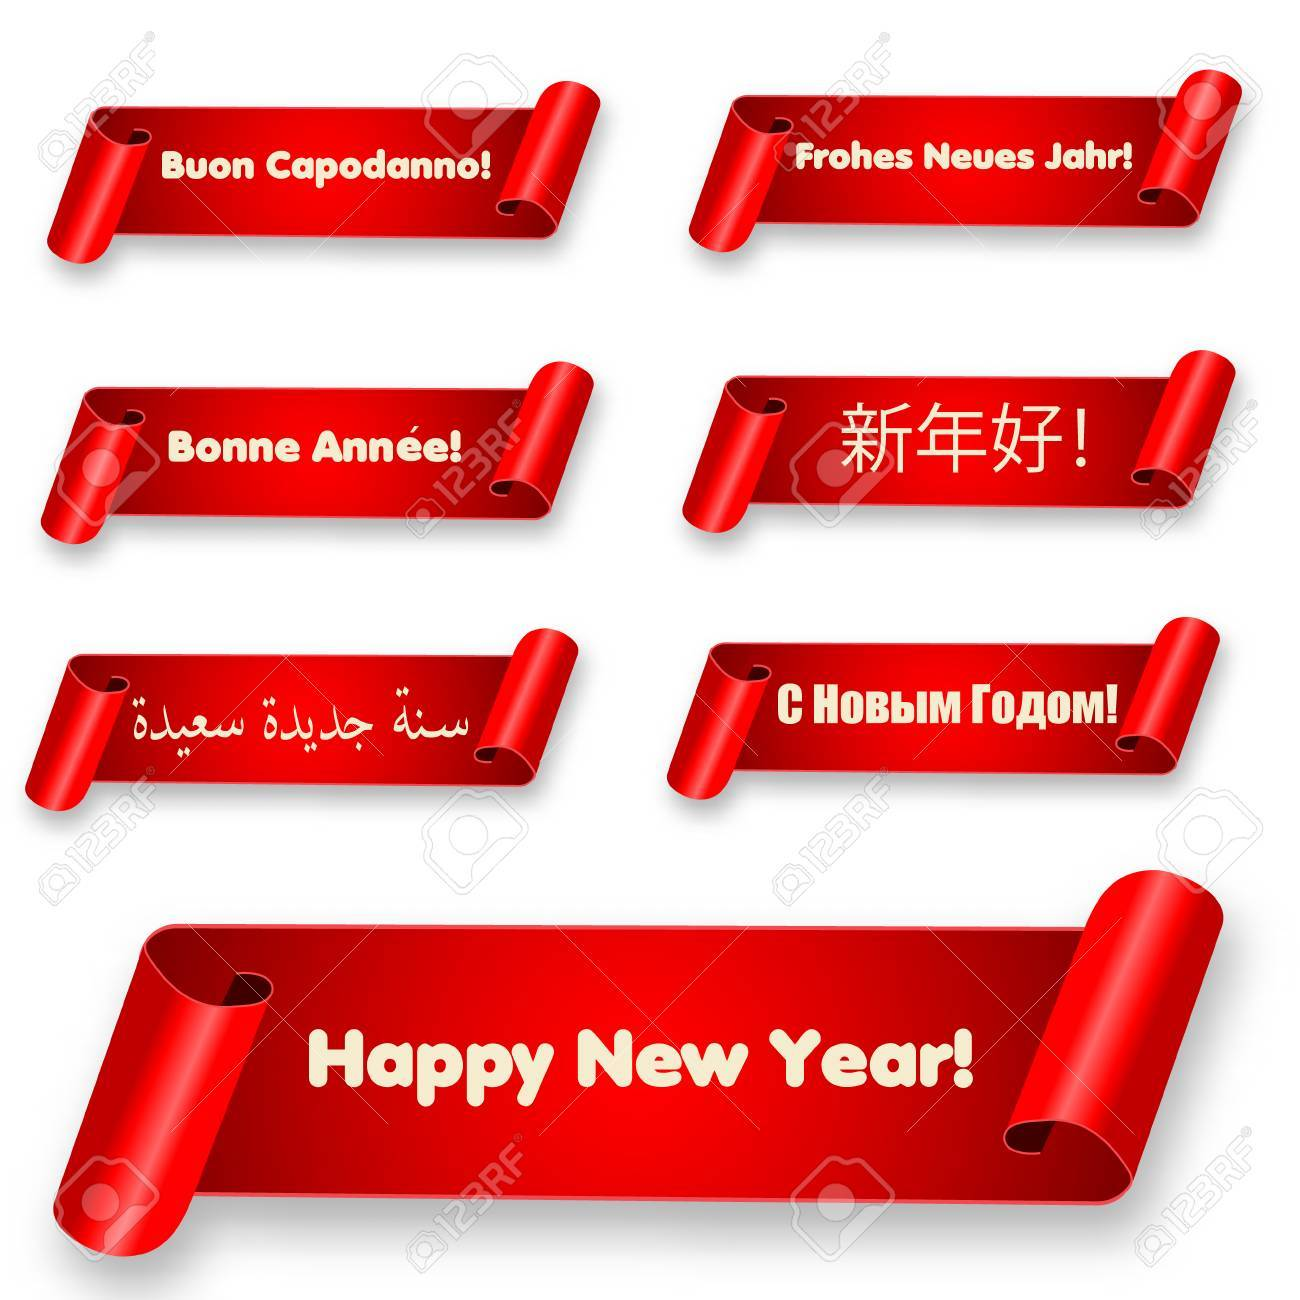 Happy new year banner with curved paper ribbon vector illustration happy new year banner with curved paper ribbon vector illustration of red horizontal holiday scroll m4hsunfo